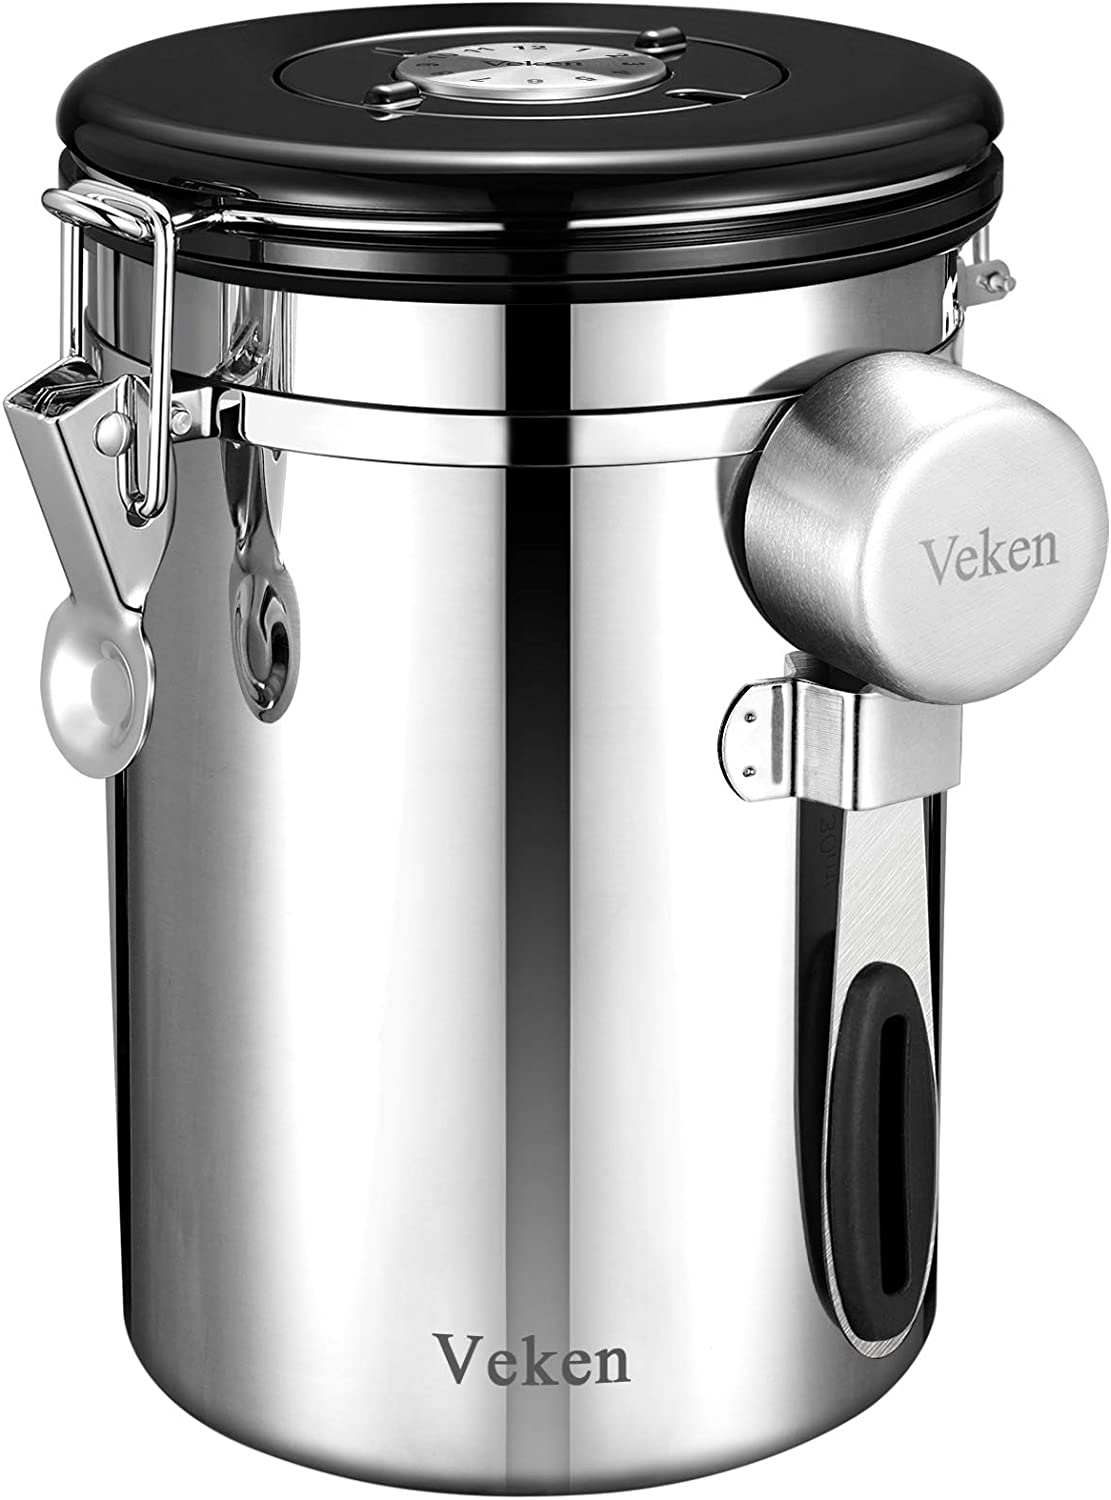 Veken Coffee Canister, Airtight Stainless Steel Food Storage Container with Date Tracker and Scoop for Grounds, Tea, Flour, Sugar, 22oz, Stainless Silver